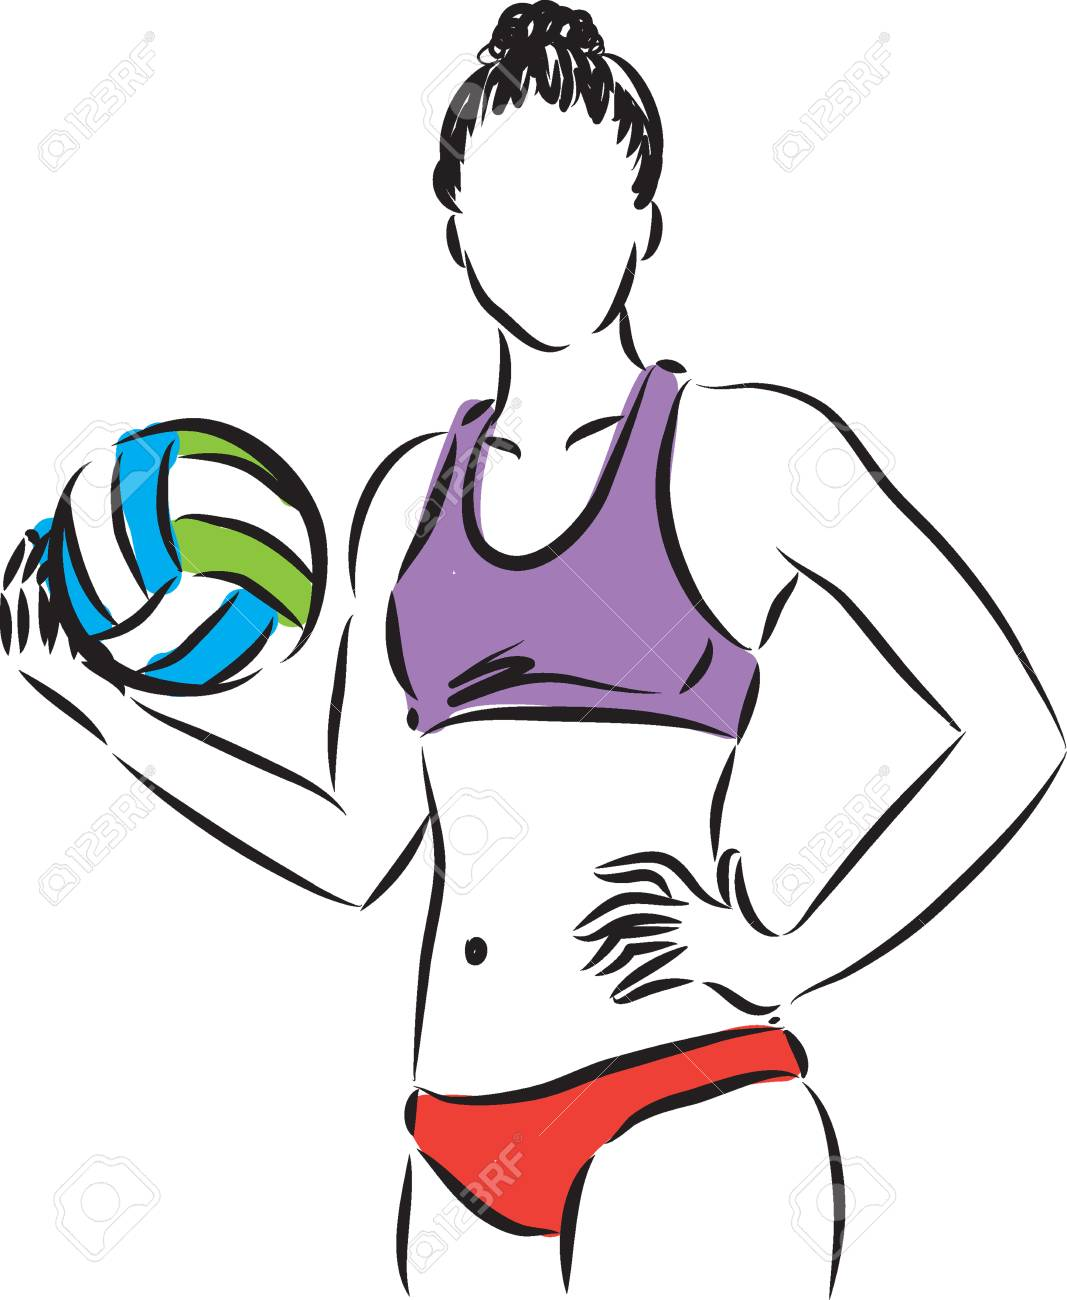 volley beach woman player illustration royalty free cliparts rh 123rf com